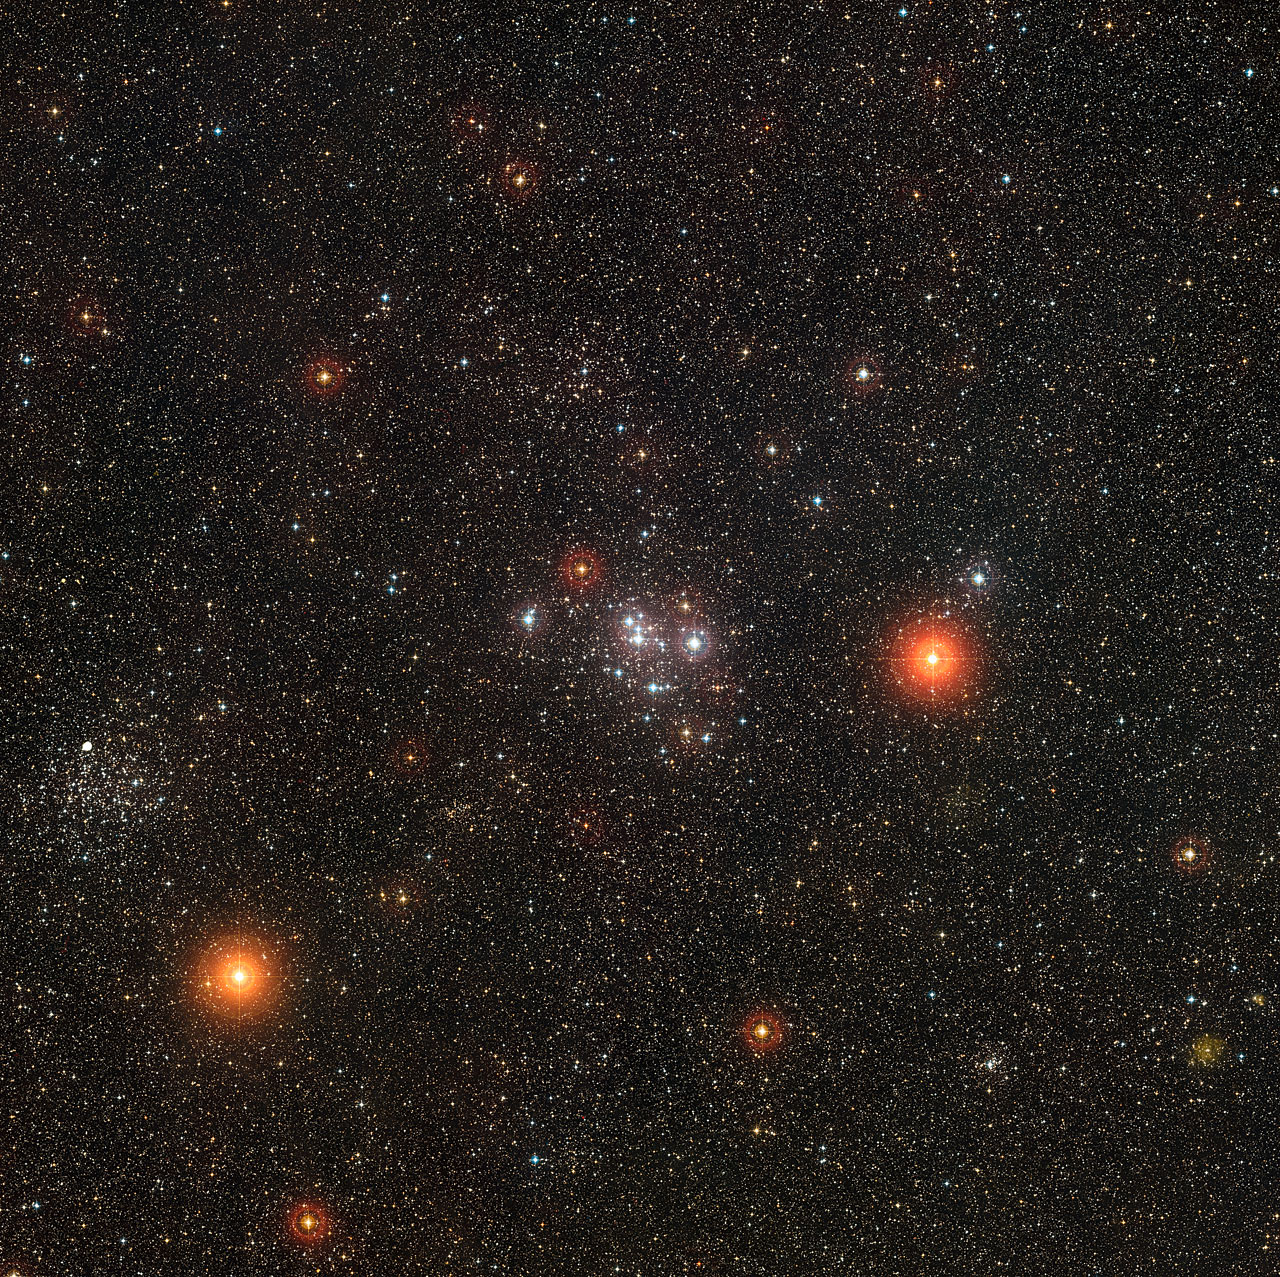 The  ESO's image  created with DSS2 data. Credit: ESO/Digitized Sky Survey 2. Acknowledgement: Davide De Martin